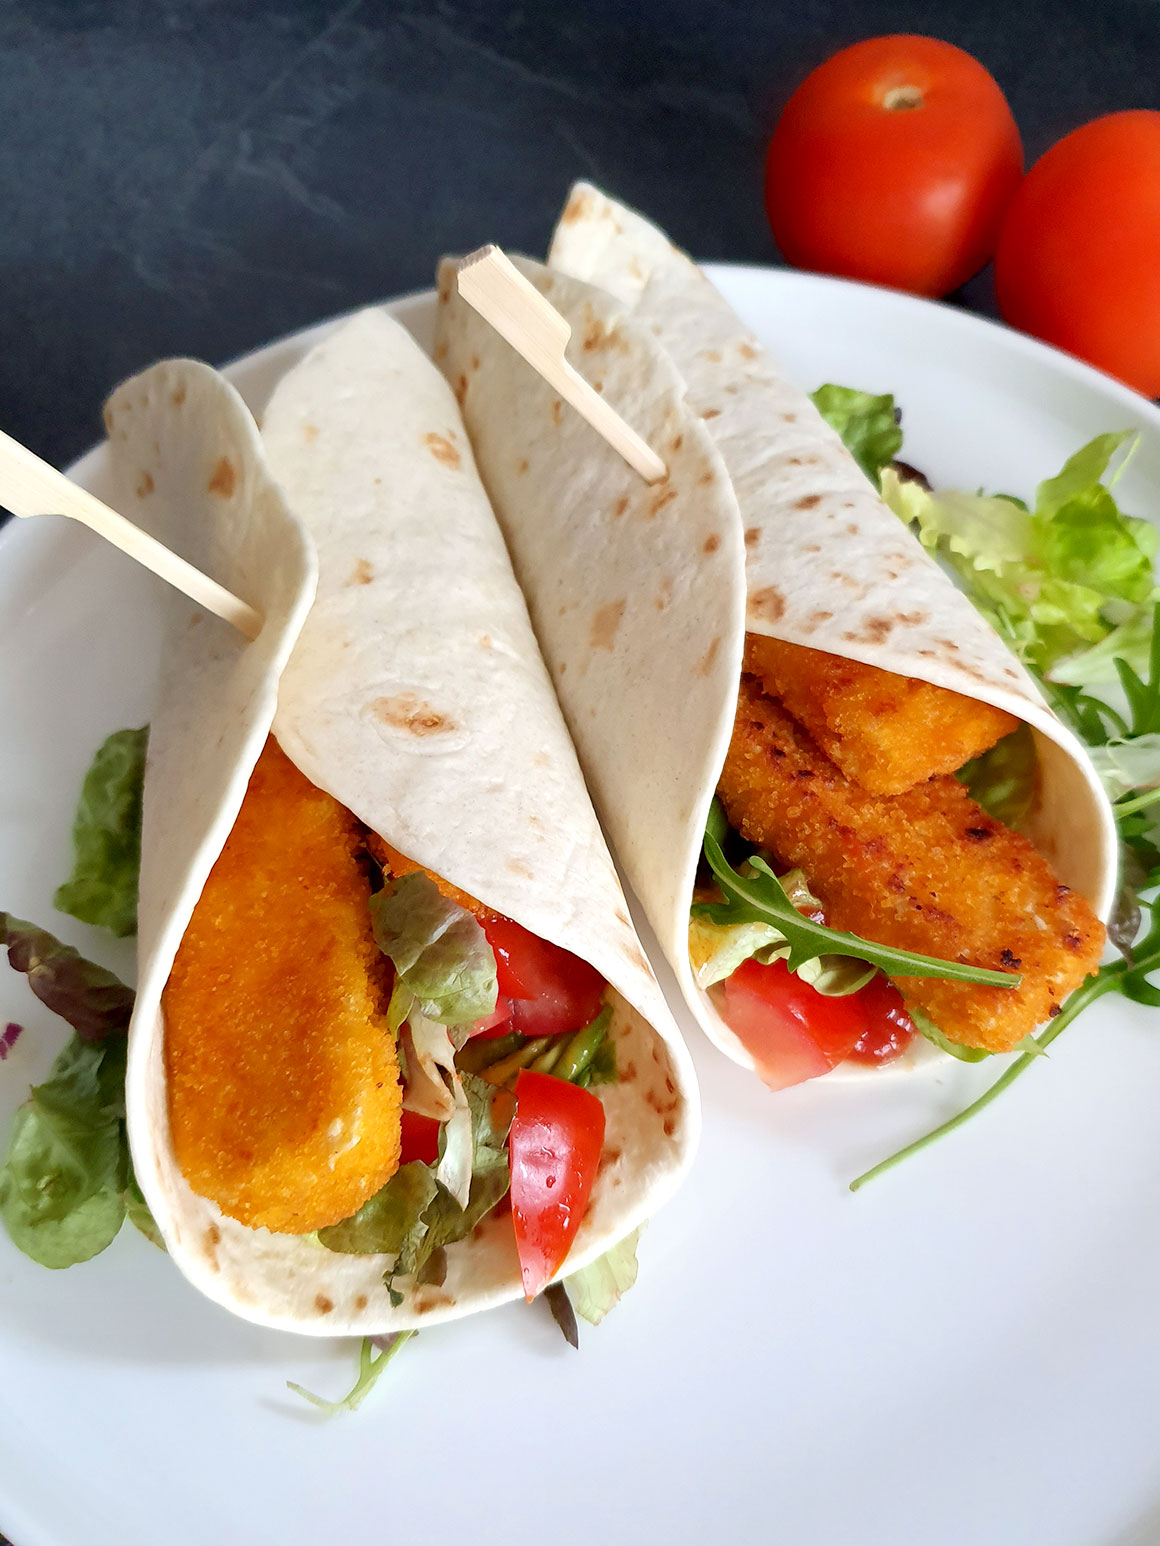 Wraps met 'vissticks'